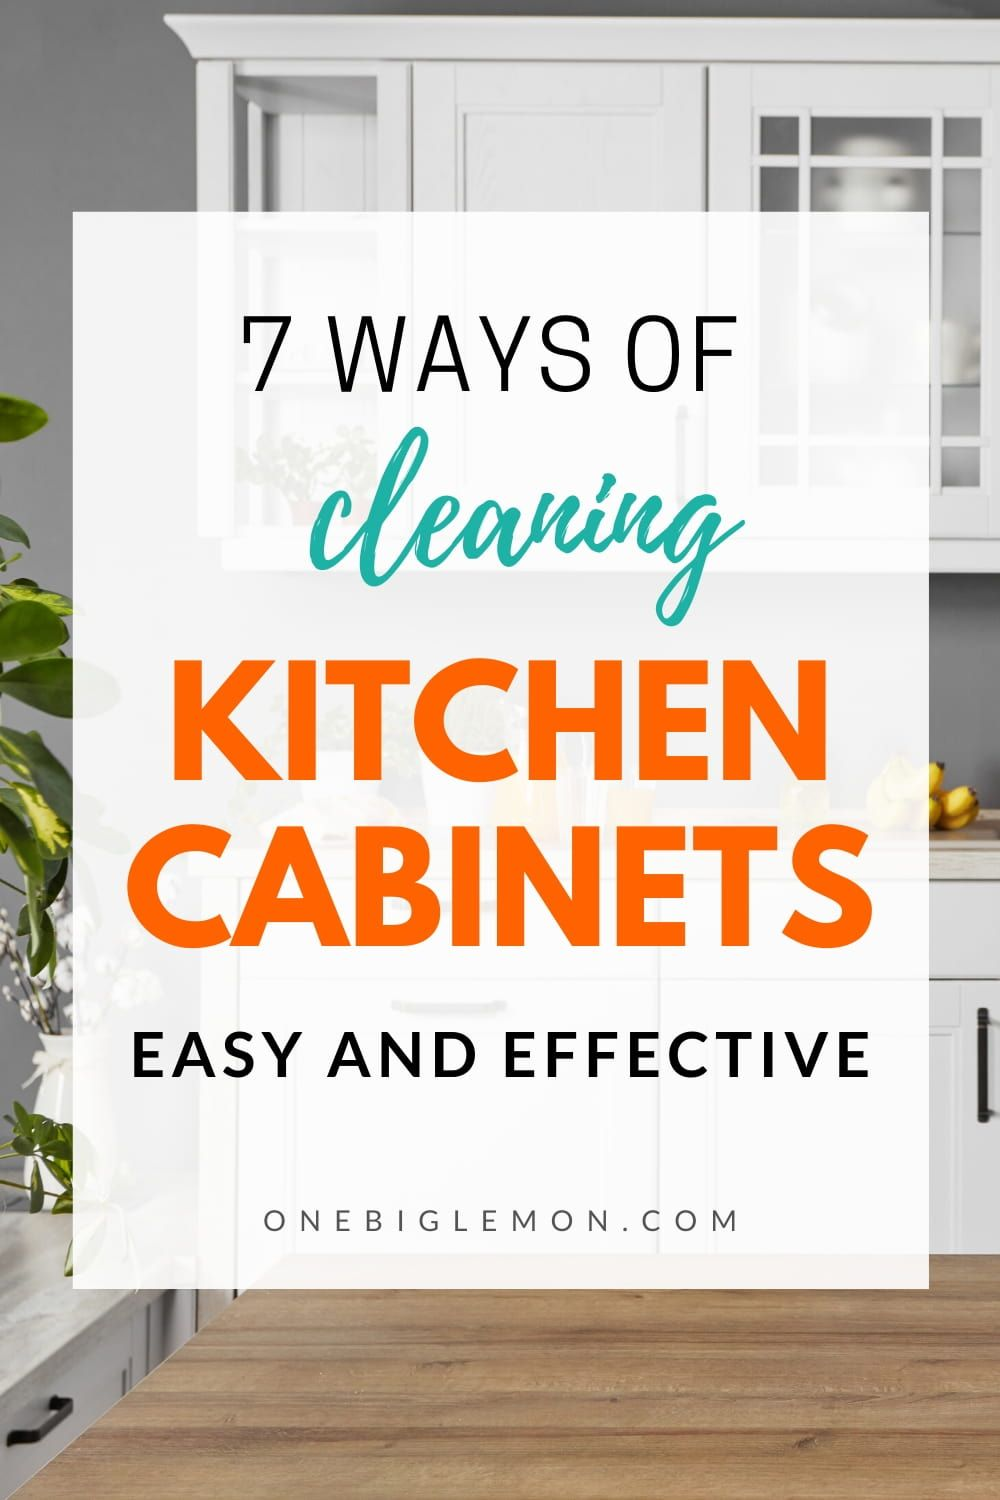 7 Easy Ways Of Cleaning Kitchen Cabinets You Must Know In 2020 Clean Kitchen Cabinets Clean Kitchen Kitchen Cabinets